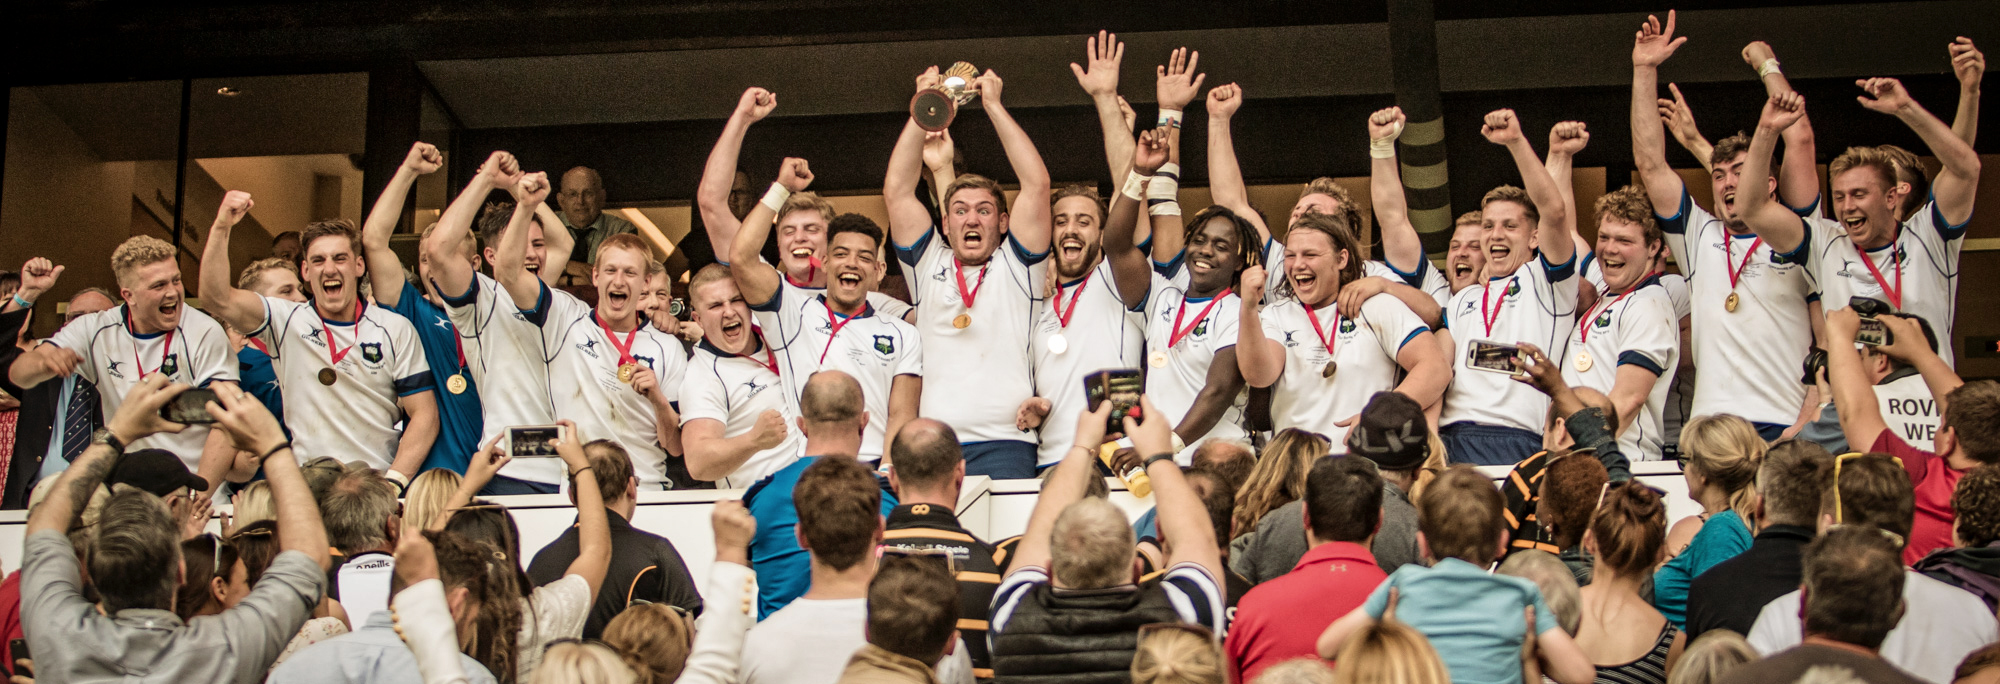 Flashback to last May - Yorkshire Under 20s - National Champions, Will, Tom, Zac and Connor